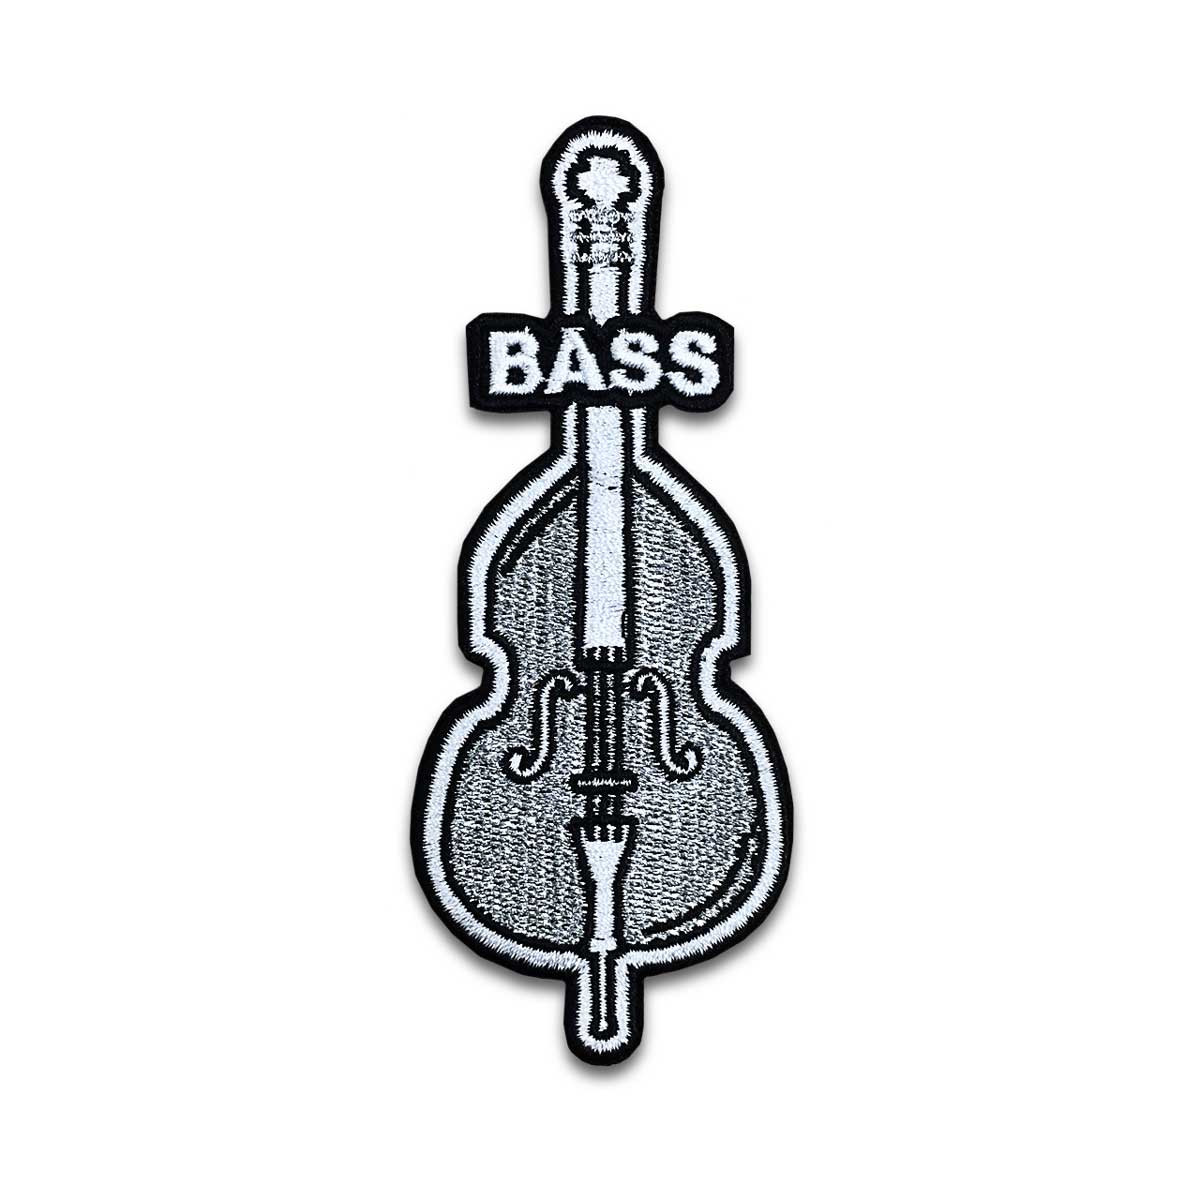 Bass Orchestra Instrument Patch